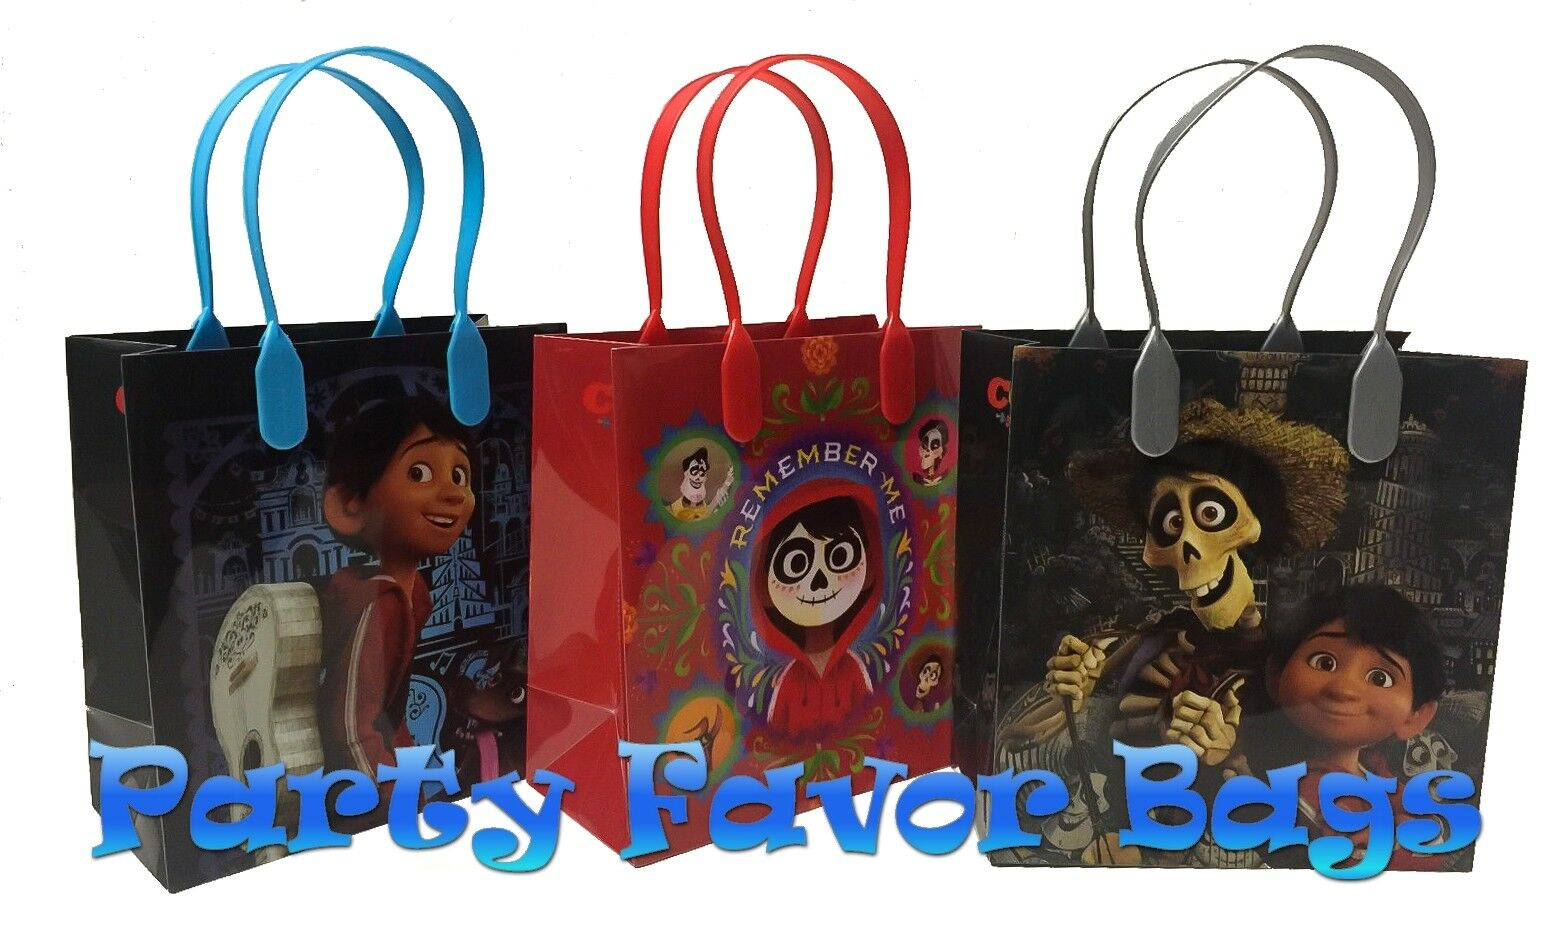 48 pc Disney Pixar COCO Party Favor Bags Candy Treat Birthday Gift Toy Loot Sack